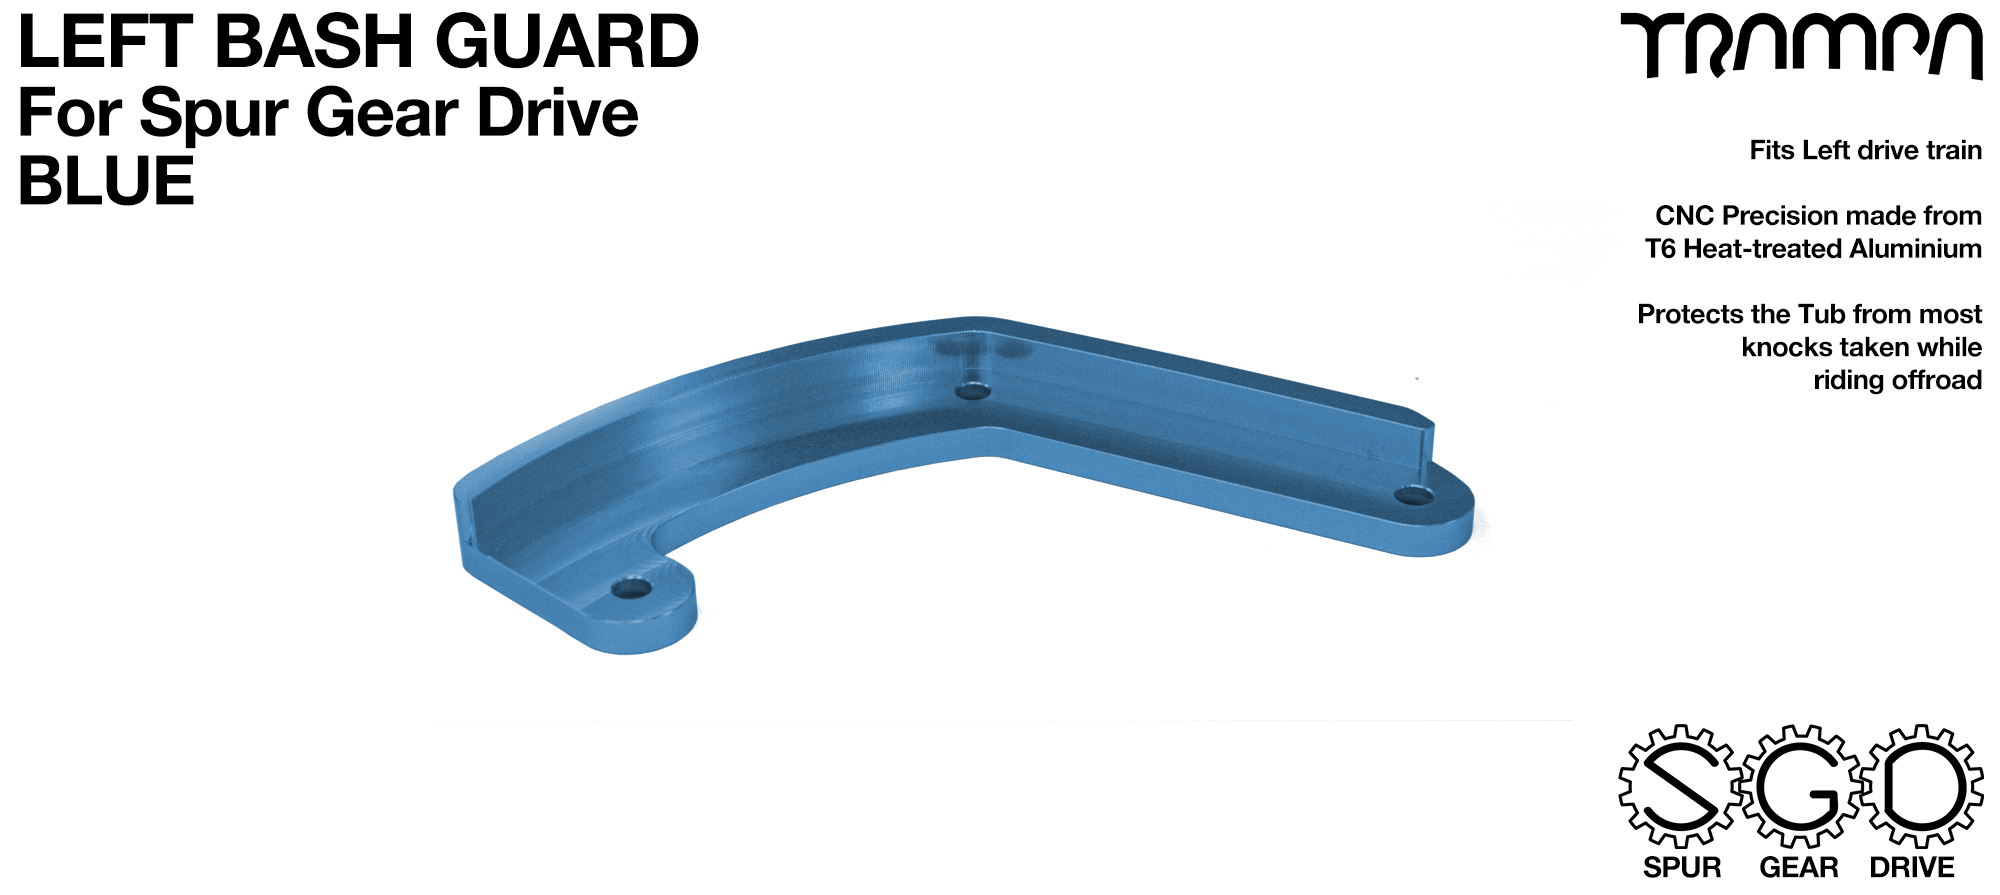 BLUE Bash Guards